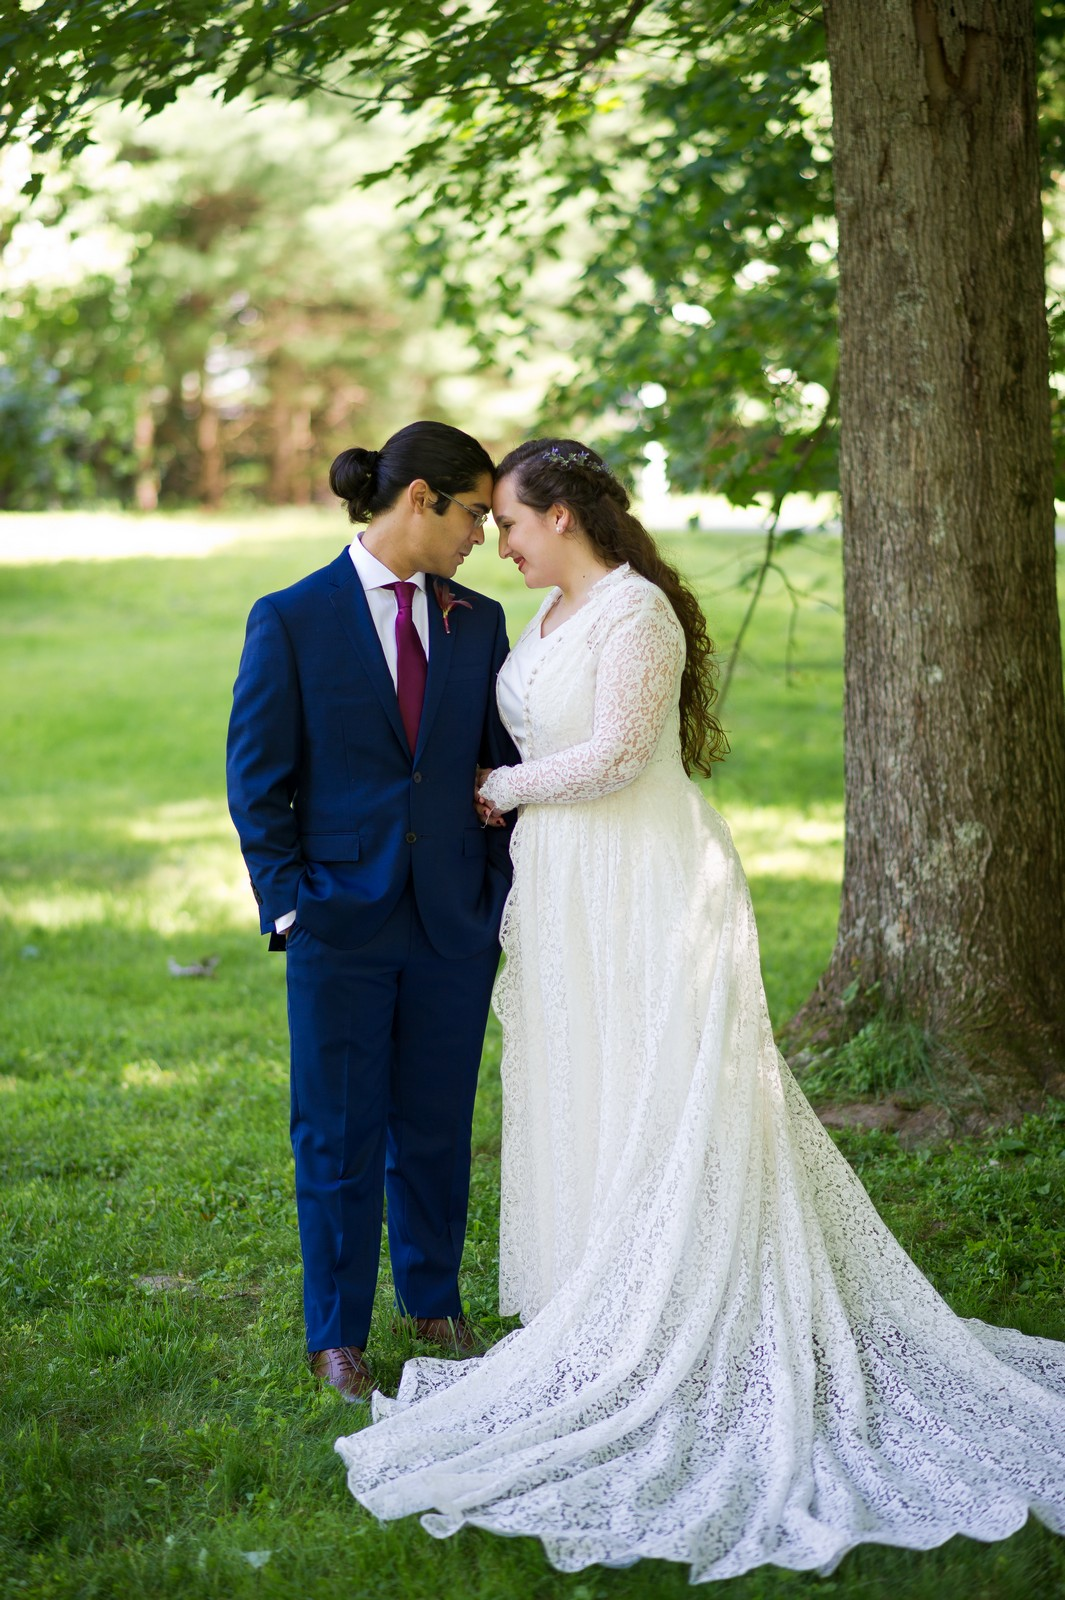 Ma'ayan and Mikey's Traditional Jewish Backyard Wedding in Fairfield, CT Photos by Chaim Schvarcz bride groom portraits